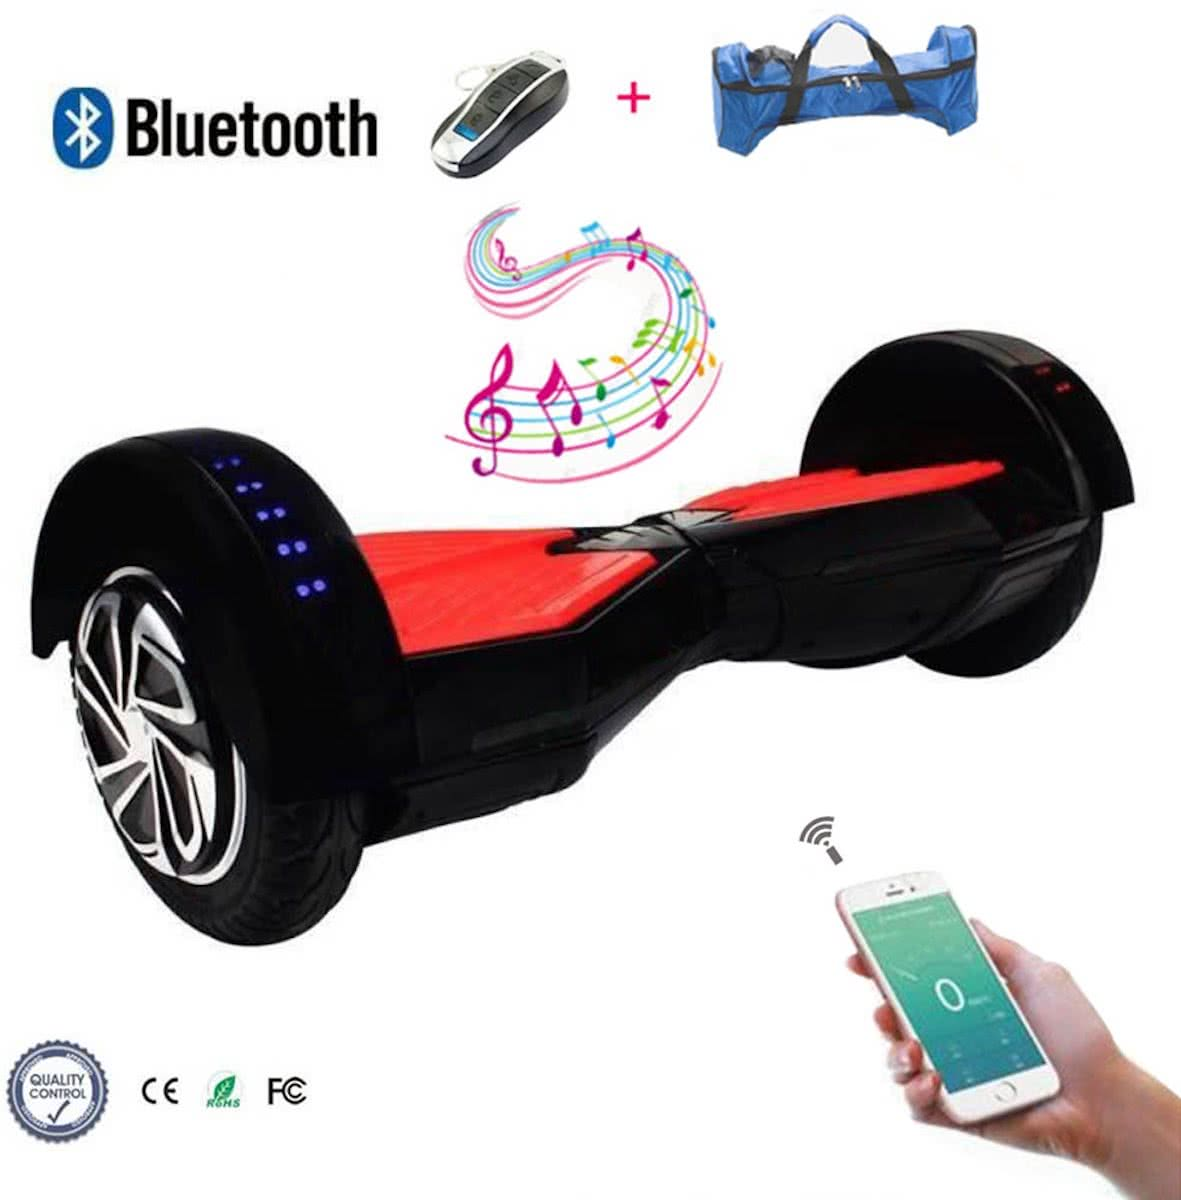 COOL & FUN Hoverboard Bluetooth, Elektrische Scooter Zelfbalansering, Gyropod Connected 8 inch Wit Blauw